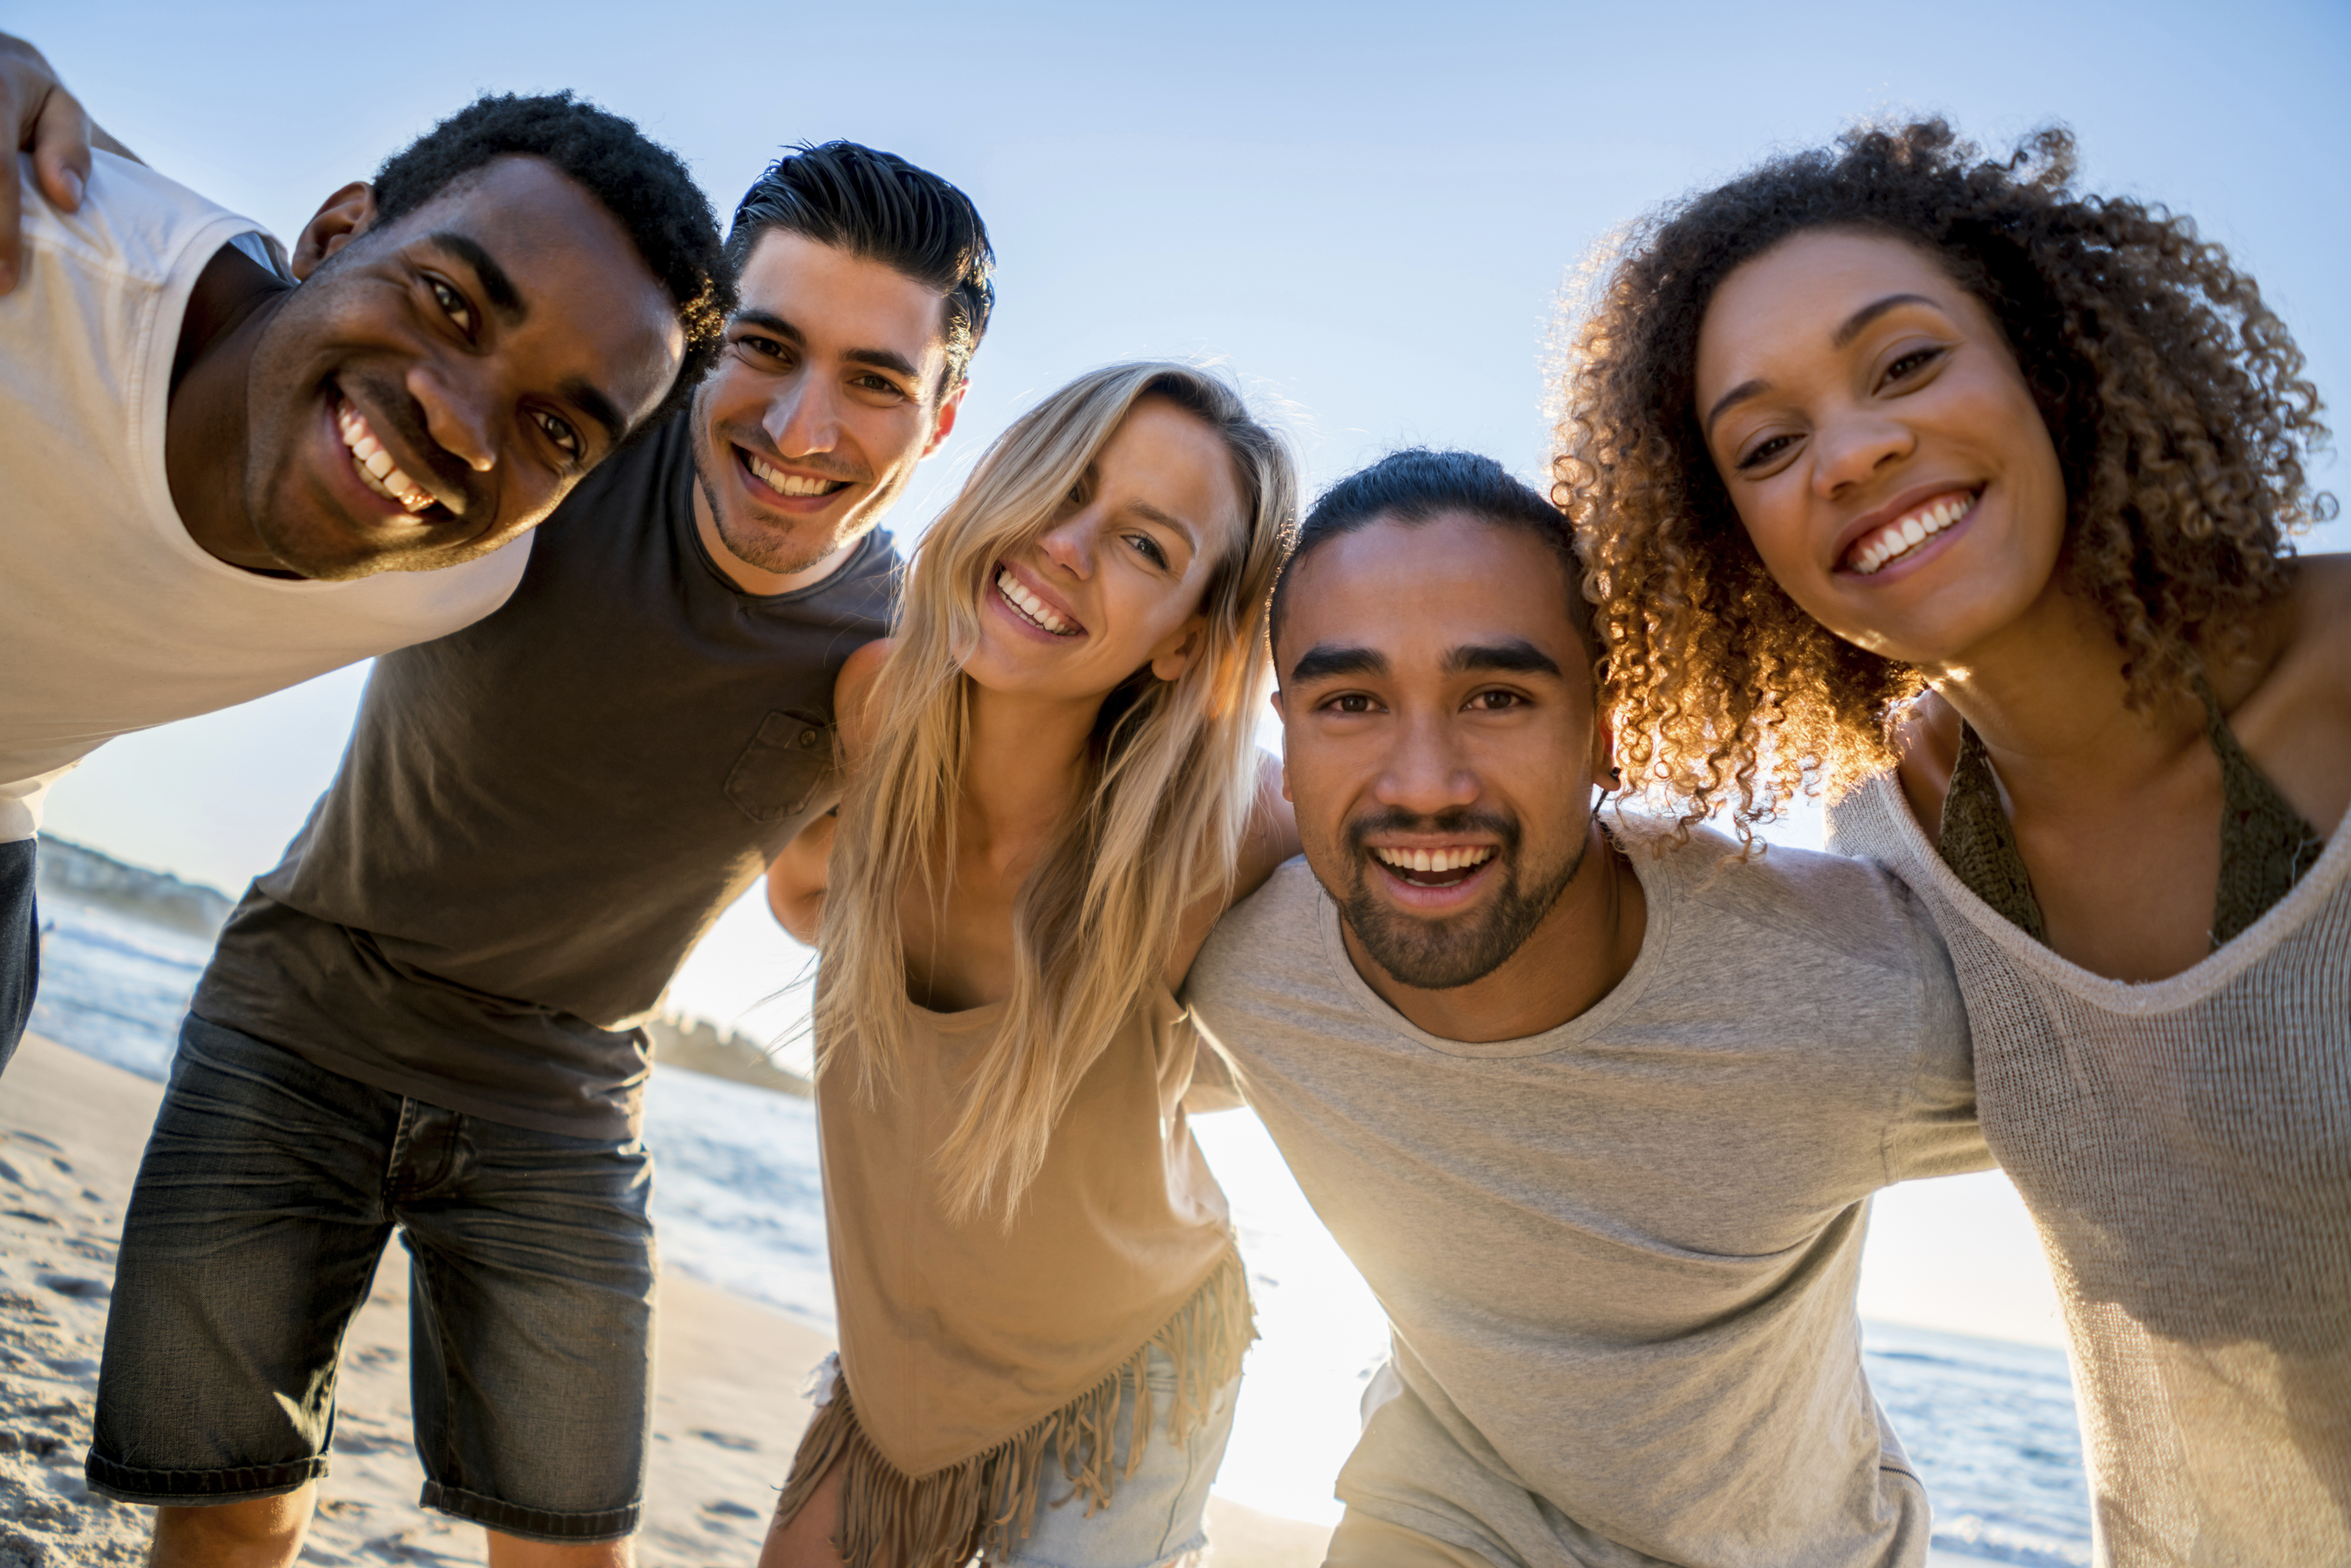 People Group iStock 83587461 LARGE